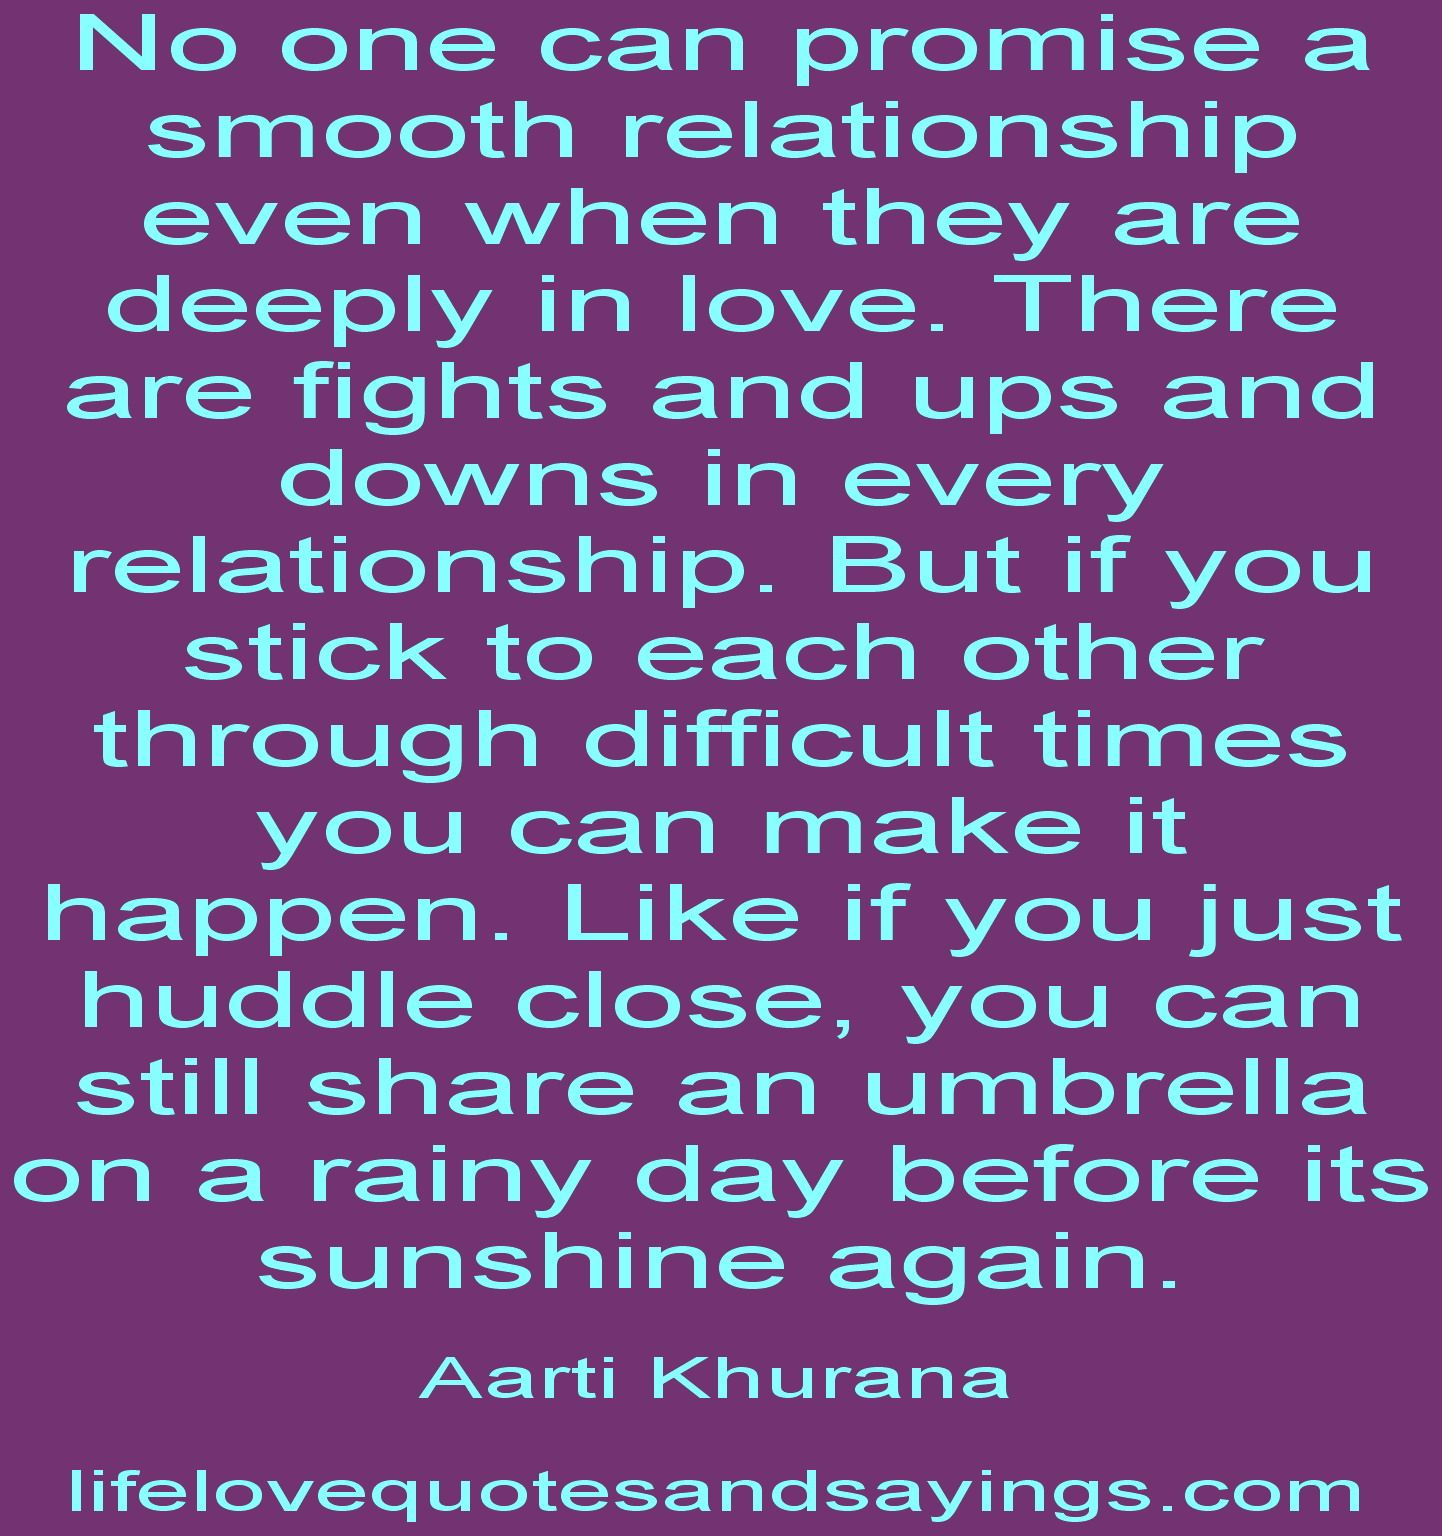 Love quotes about difficult relationships attract the right kind of relationship